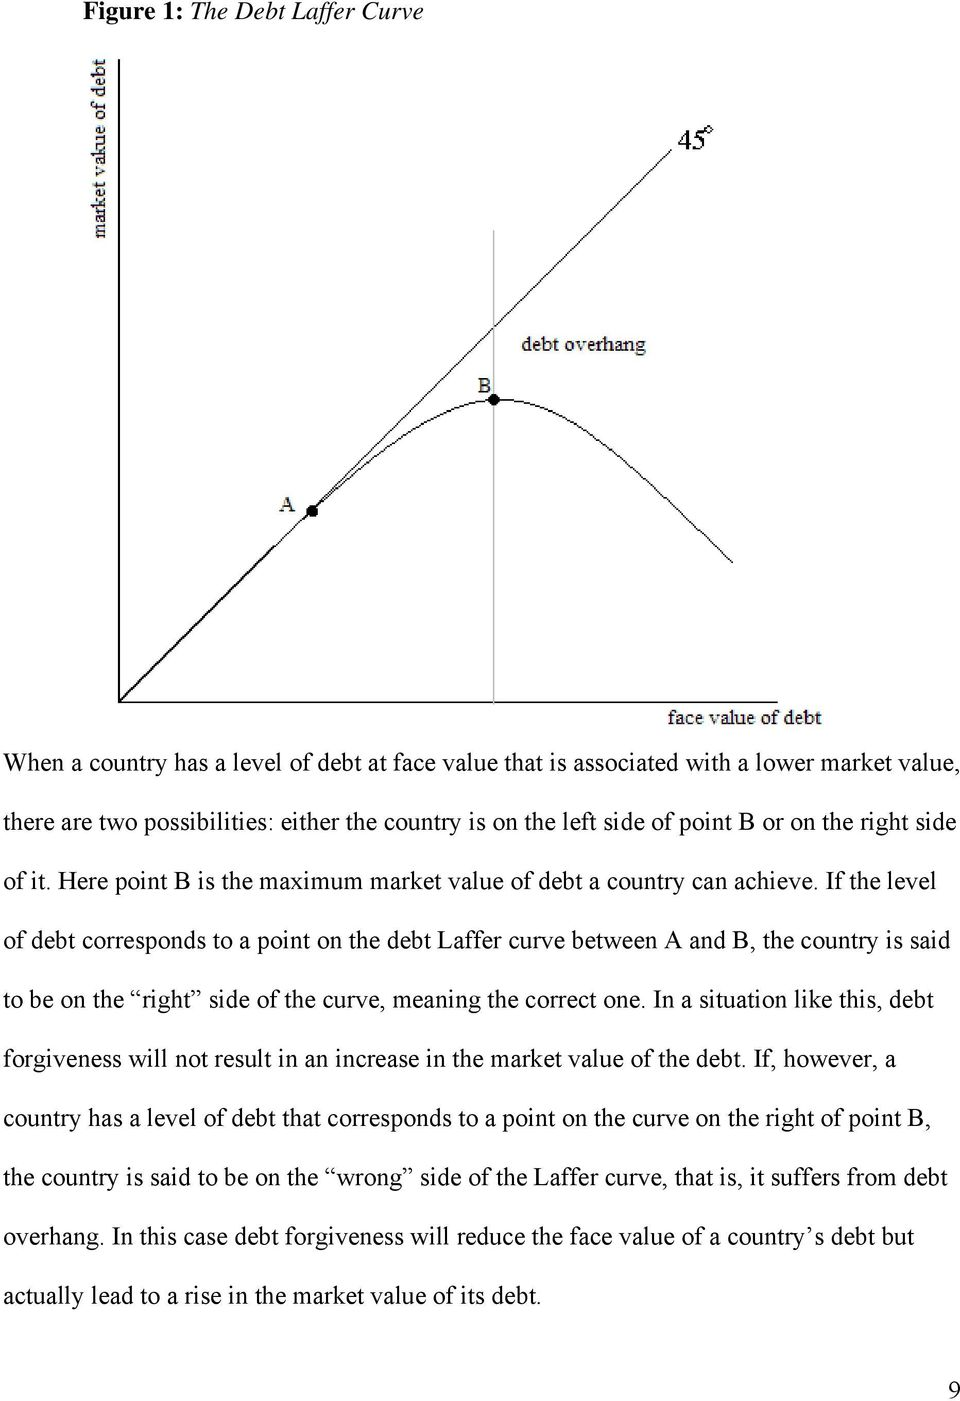 If the level of debt corresponds to a point on the debt Laffer curve between A and B, the country is said to be on the right side of the curve, meaning the correct one.